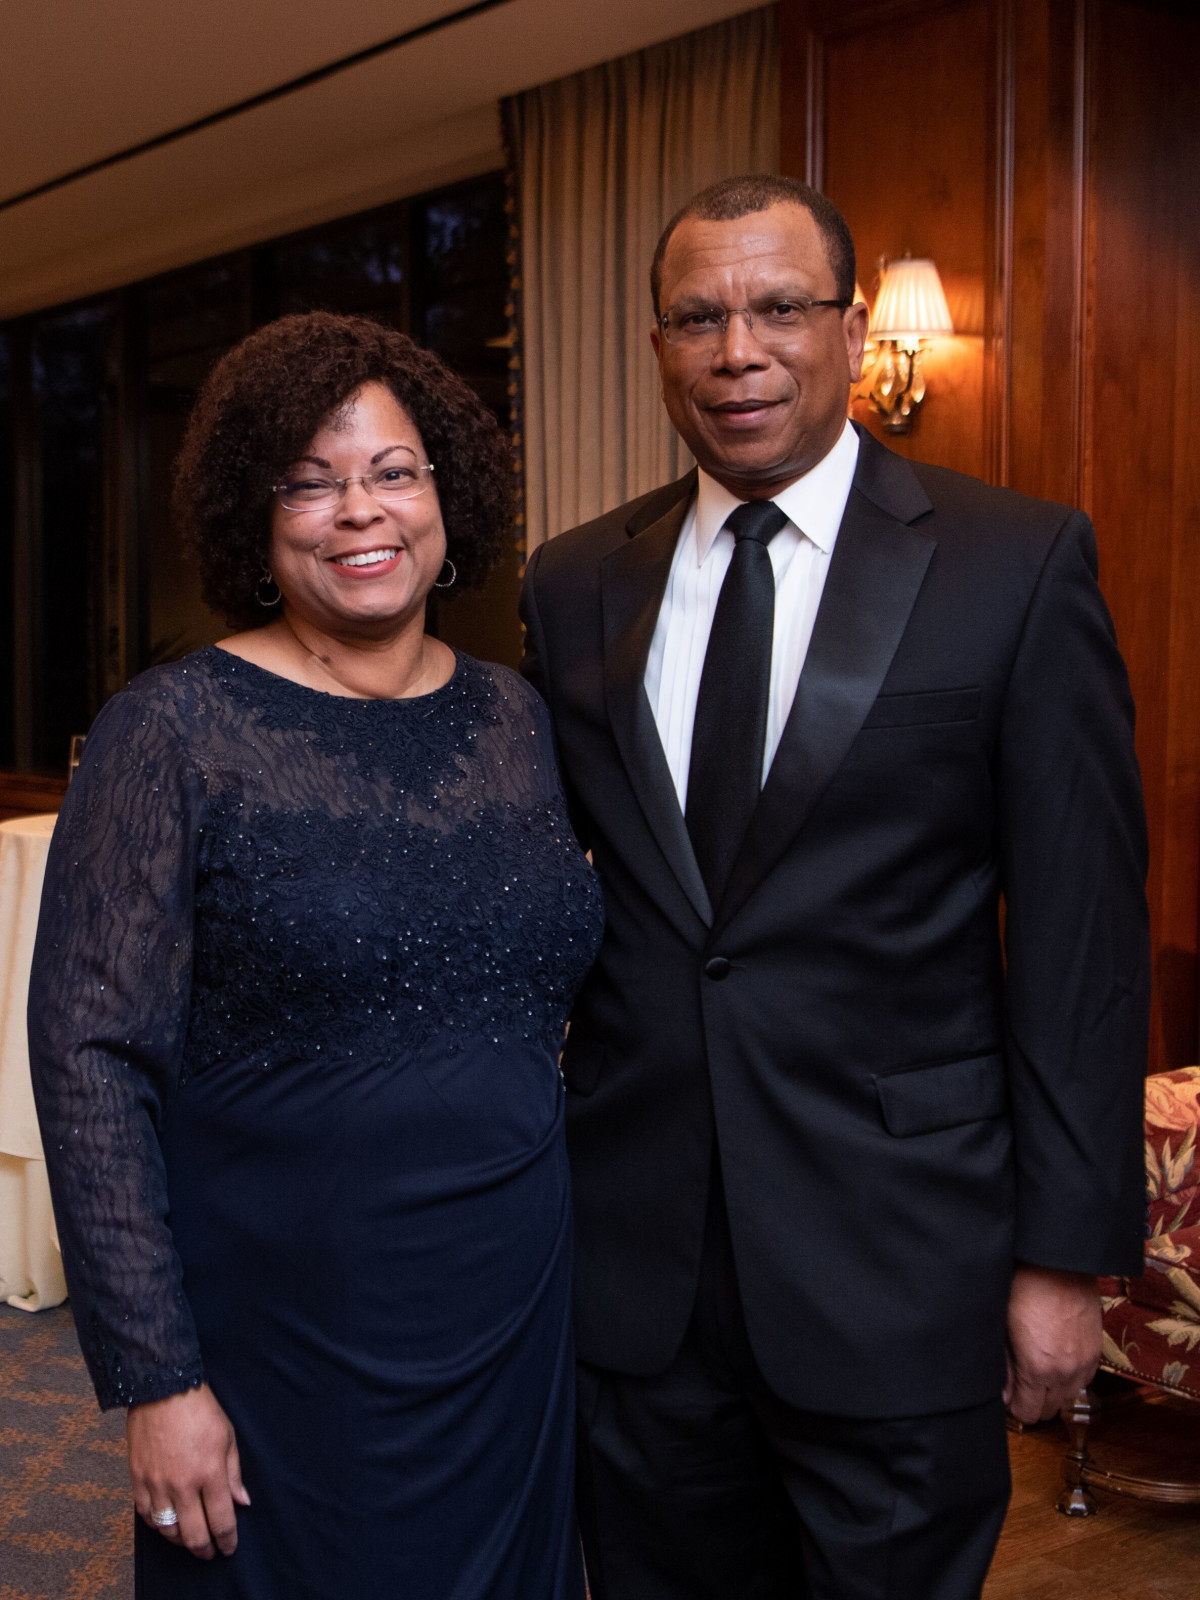 Inprint Poets & Writers Gala 2020: Inprint Board Vice President Marcia West and Ron Lewis